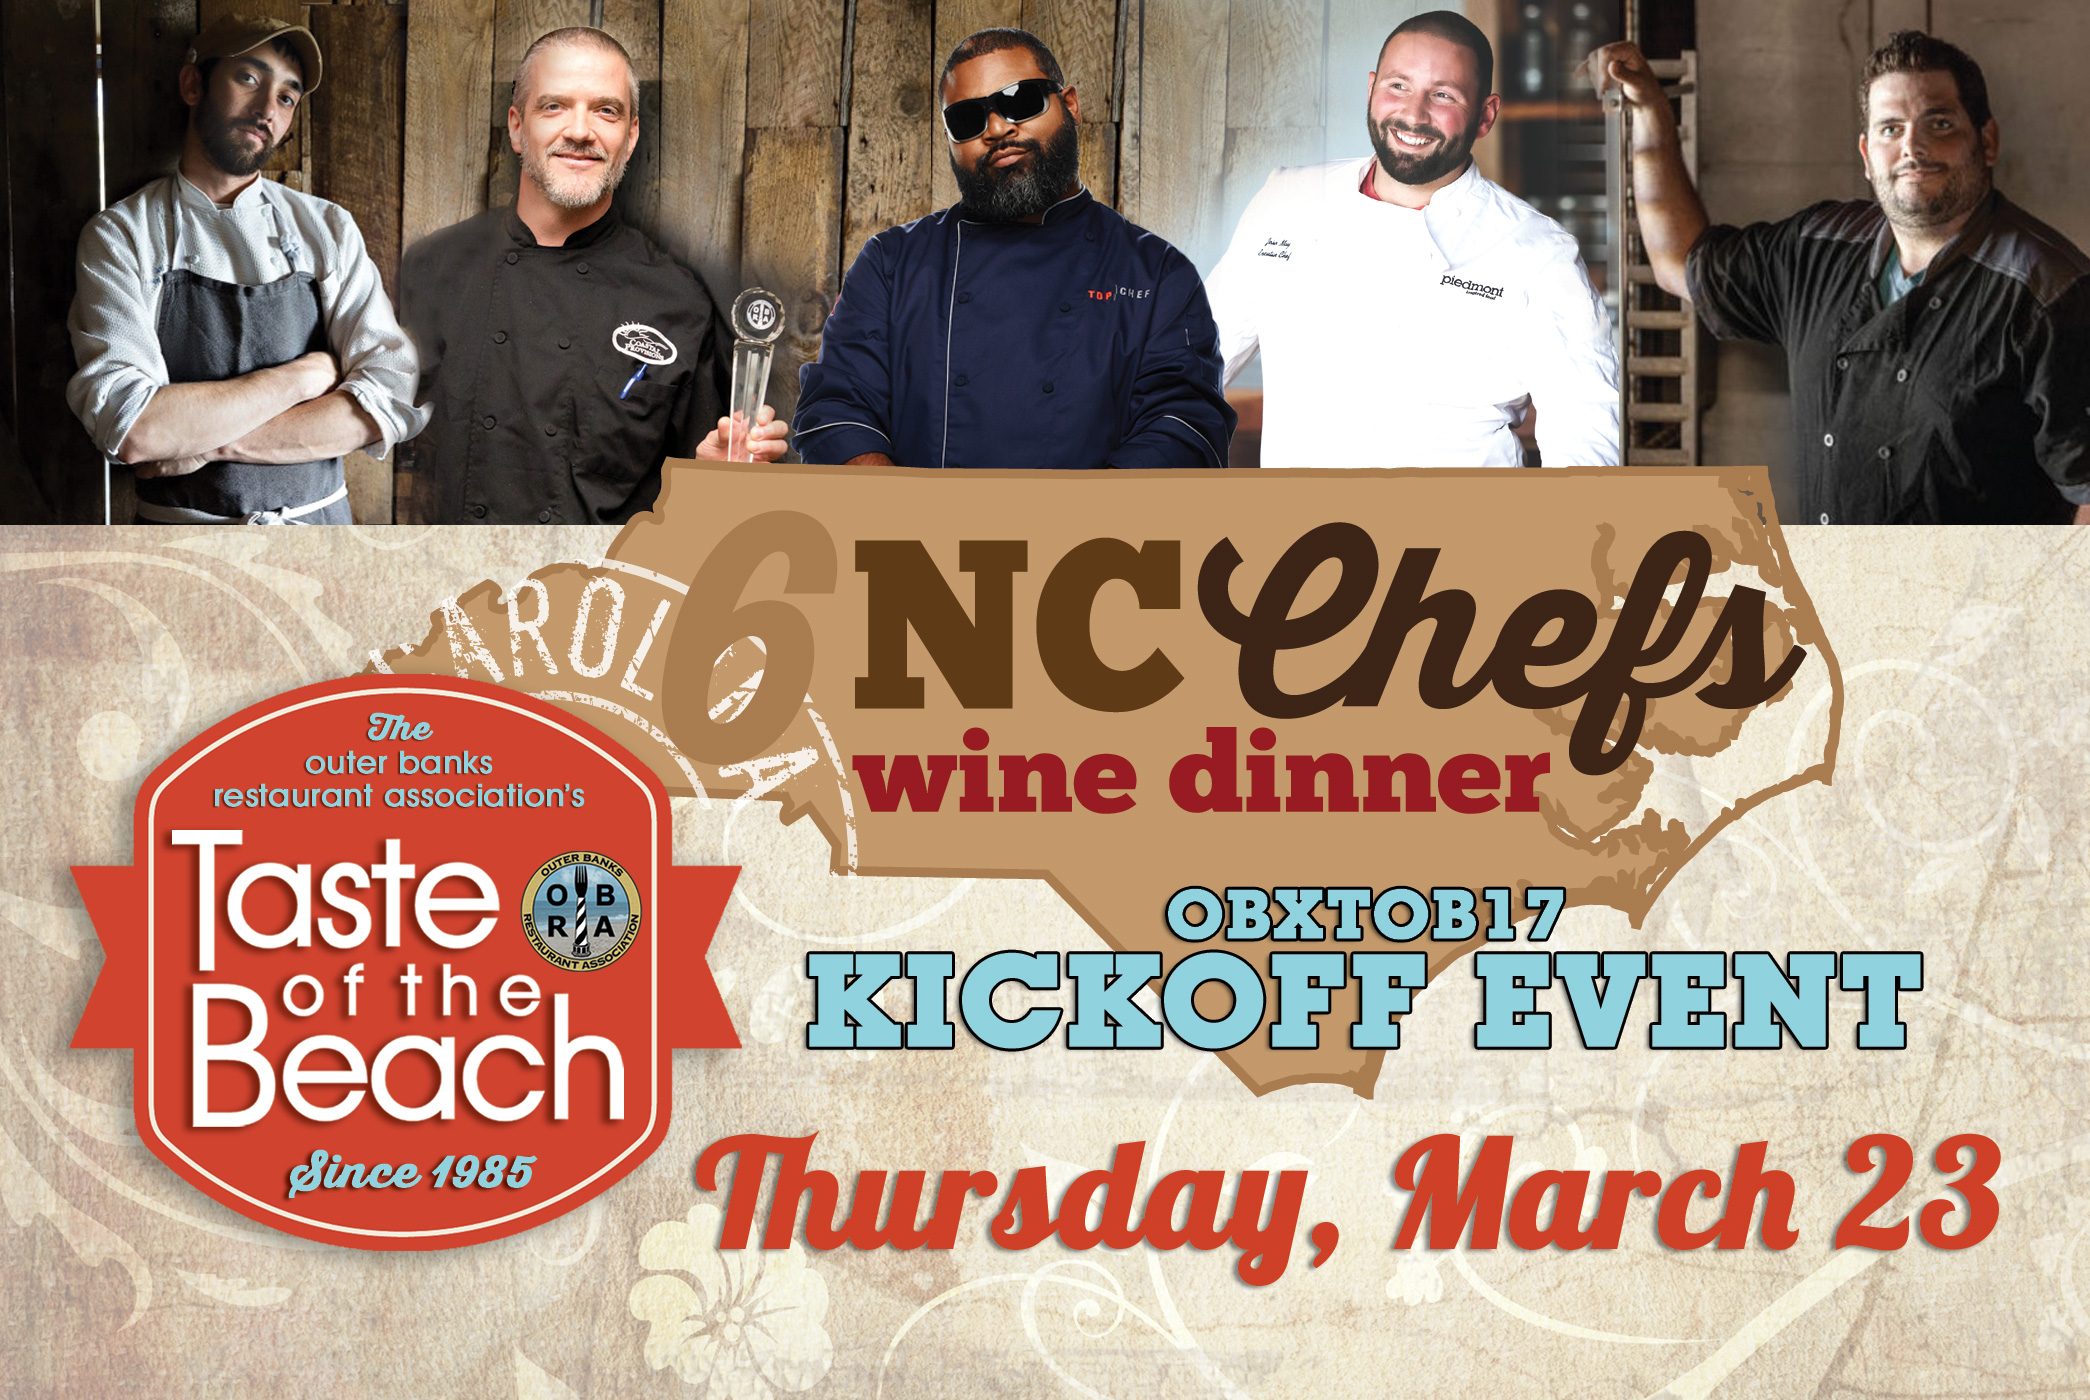 NC Chef's Wine Dinner and TOB Kickoff Event